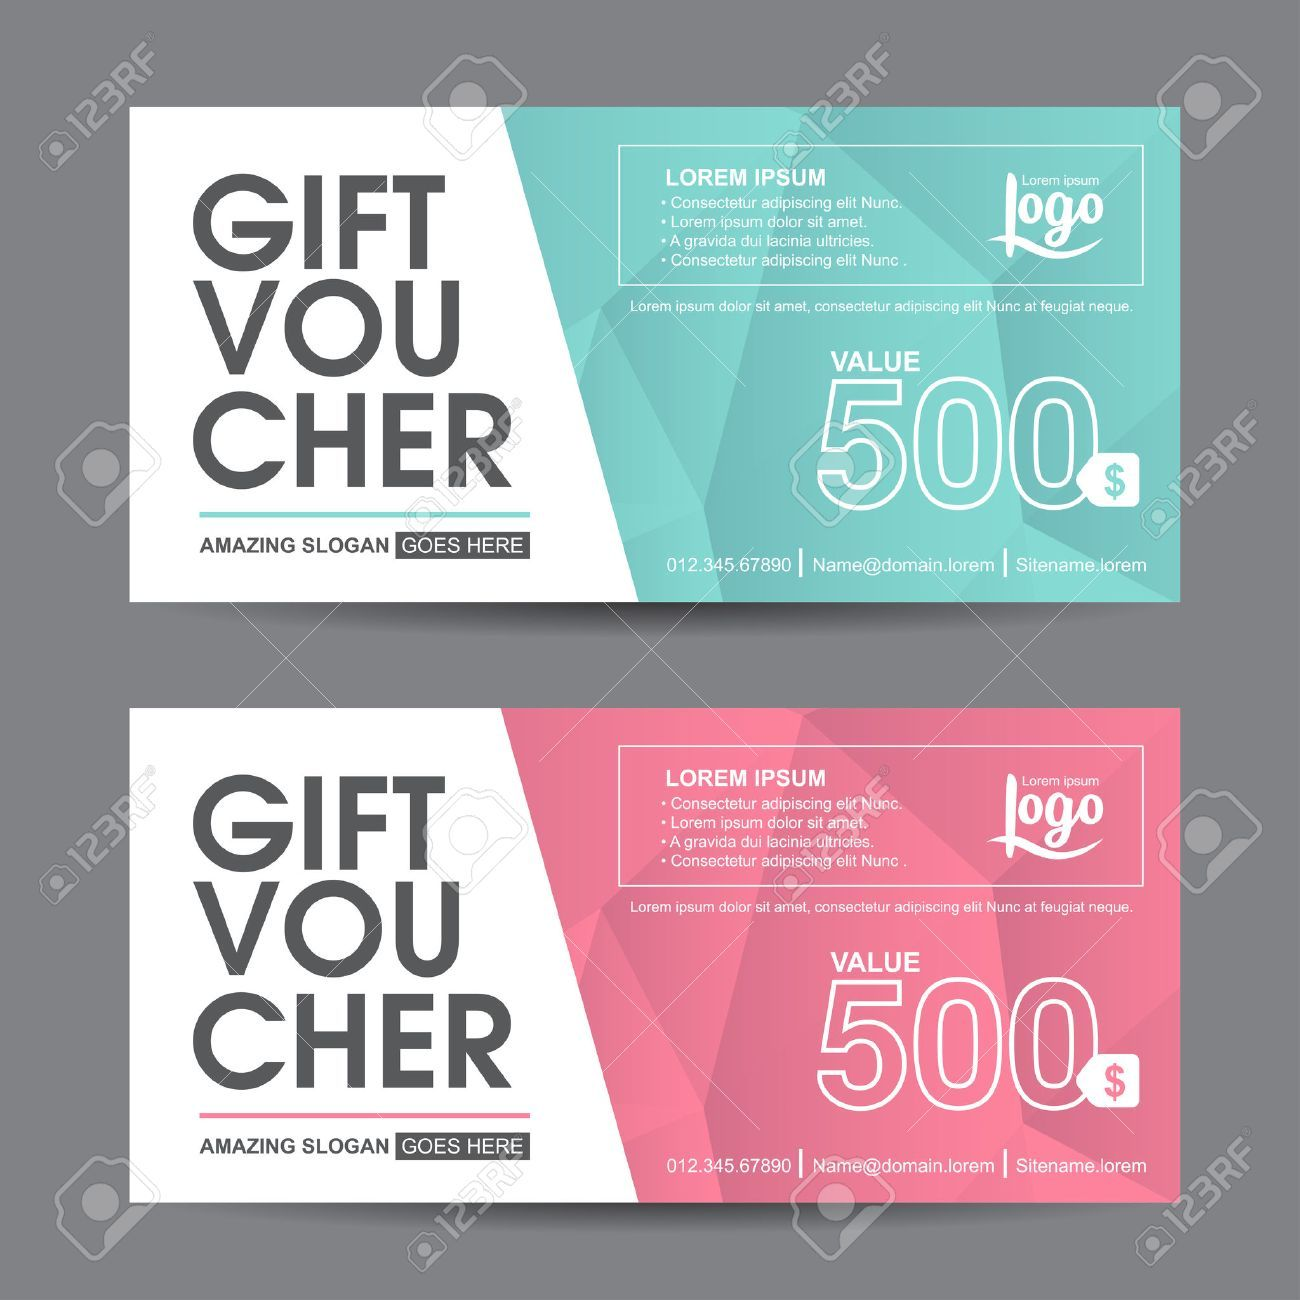 Gift voucher template with colorful patterncute gift voucher gift voucher template with colorful patterncute gift voucher certificate coupon design template collection gift certificate business card banner calling yelopaper Gallery